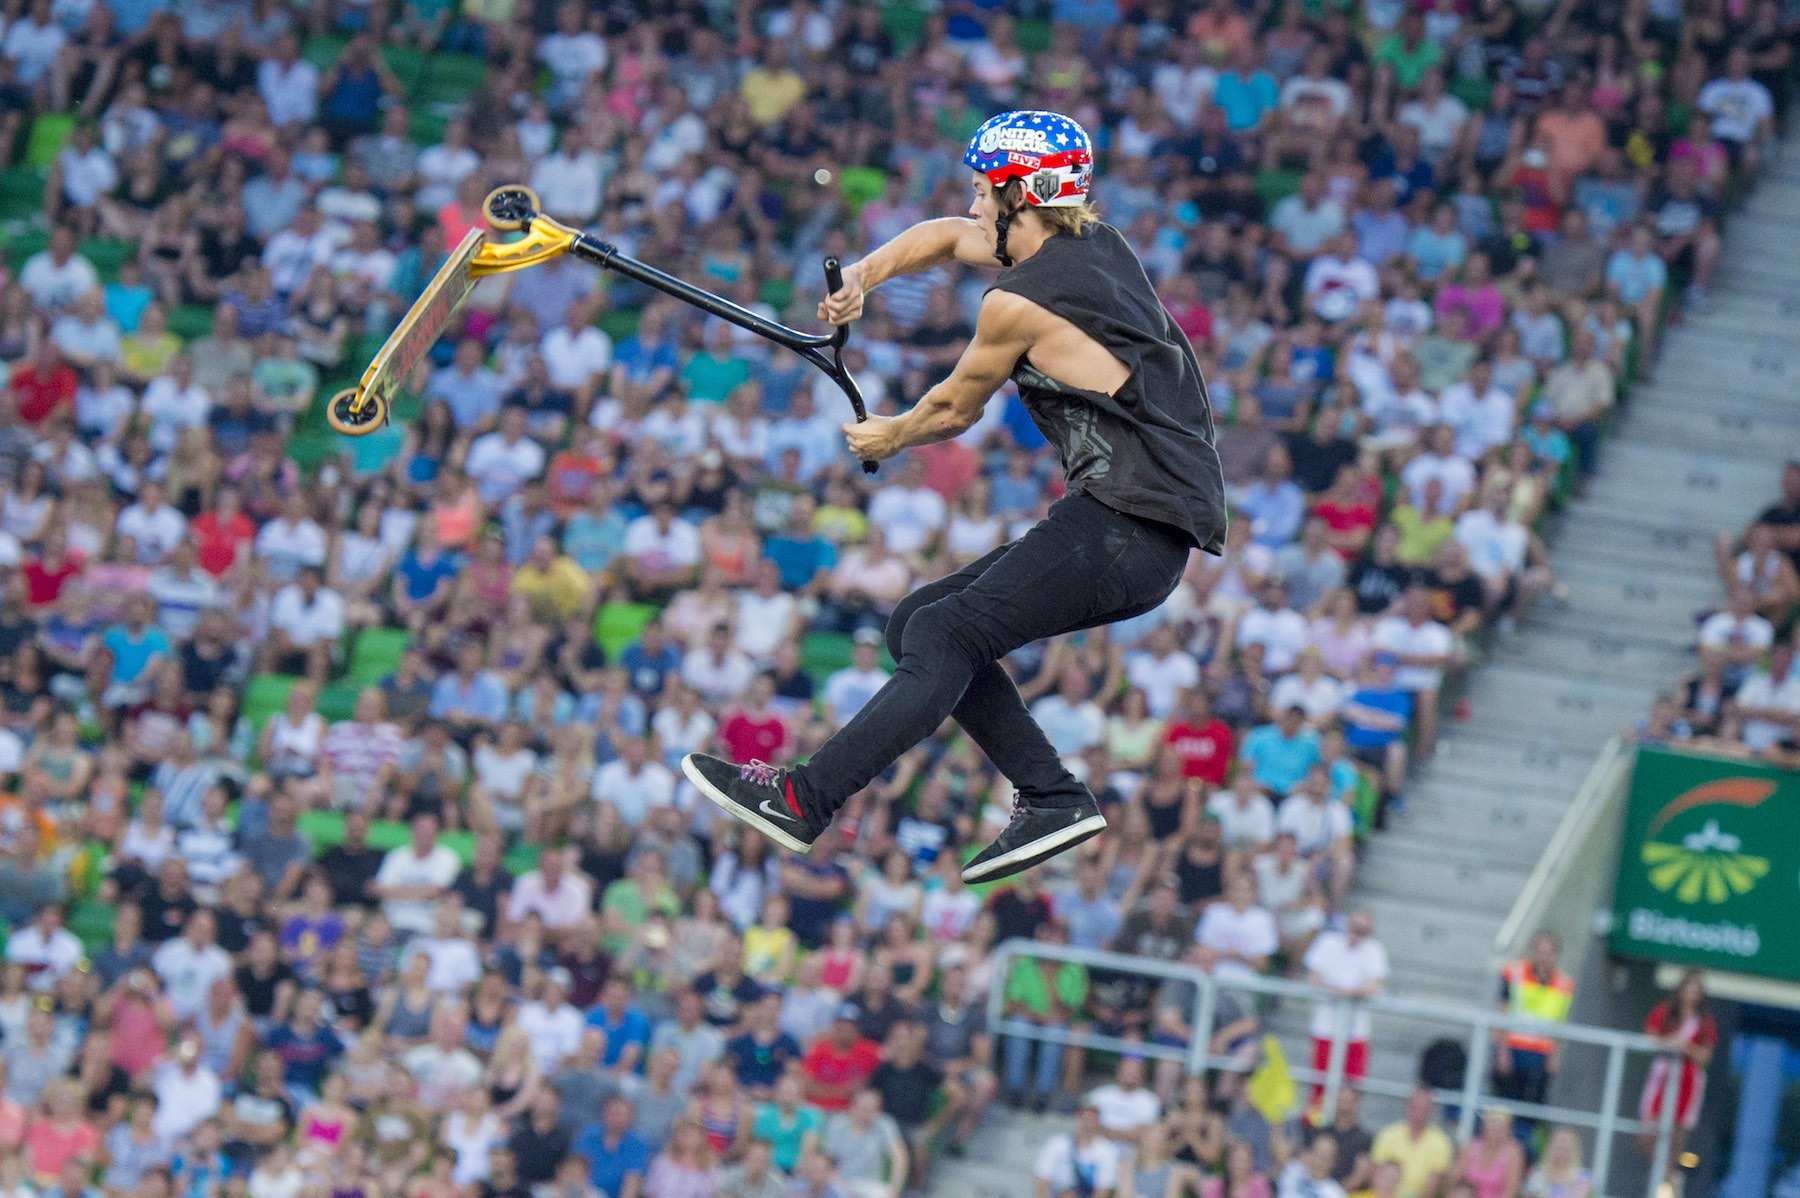 Ryan Williams showcasing his Scooter skills at Nitro Circus Live